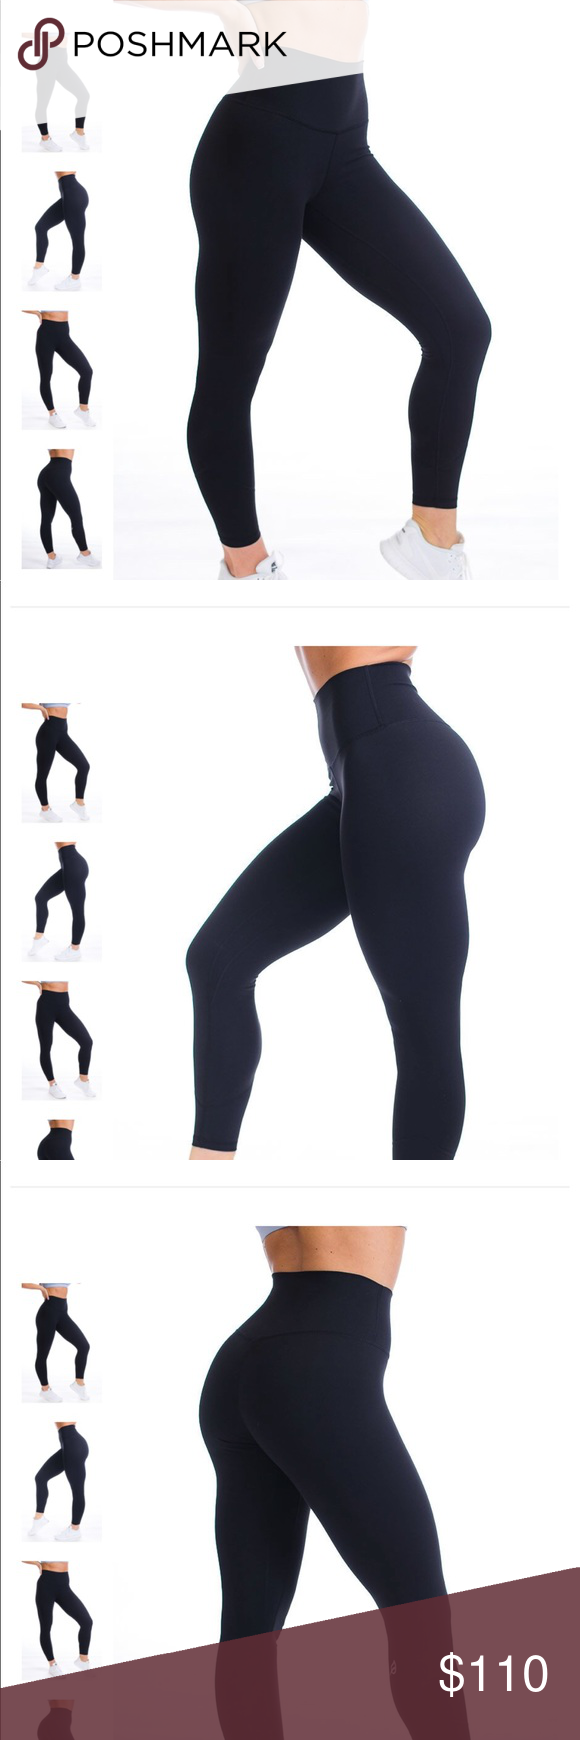 Ptula The Alainah Ii Allure Legging Smooth Black Leggings Are Not Pants Black Clothes Design P'tula active alainah allure legging size: pinterest